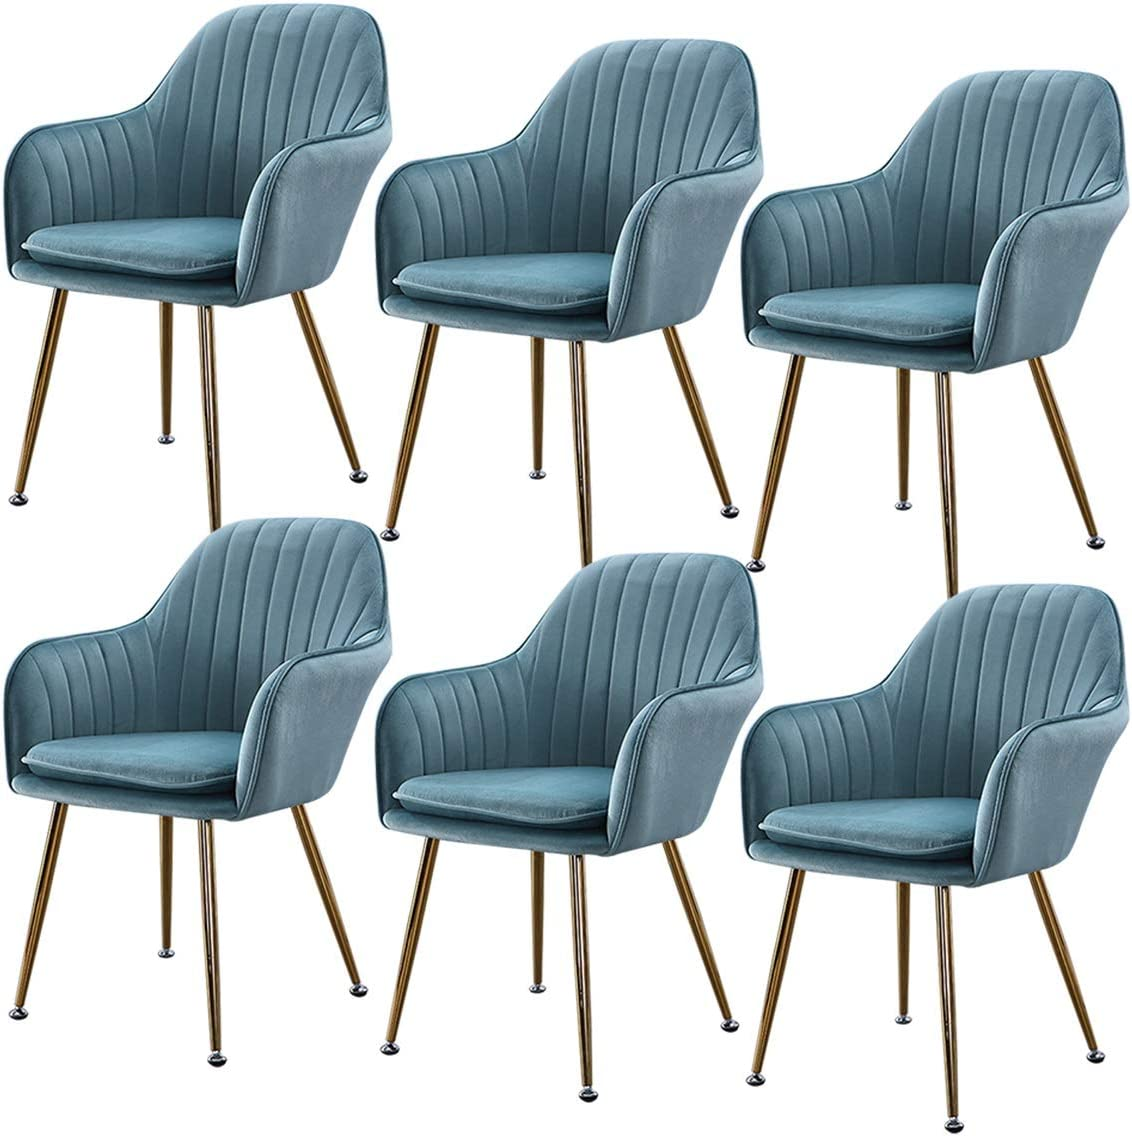 ZCXBHD Light High quality new Luxury Nordic Dining Flannel Fabric Modern Chairs Las Vegas Mall M